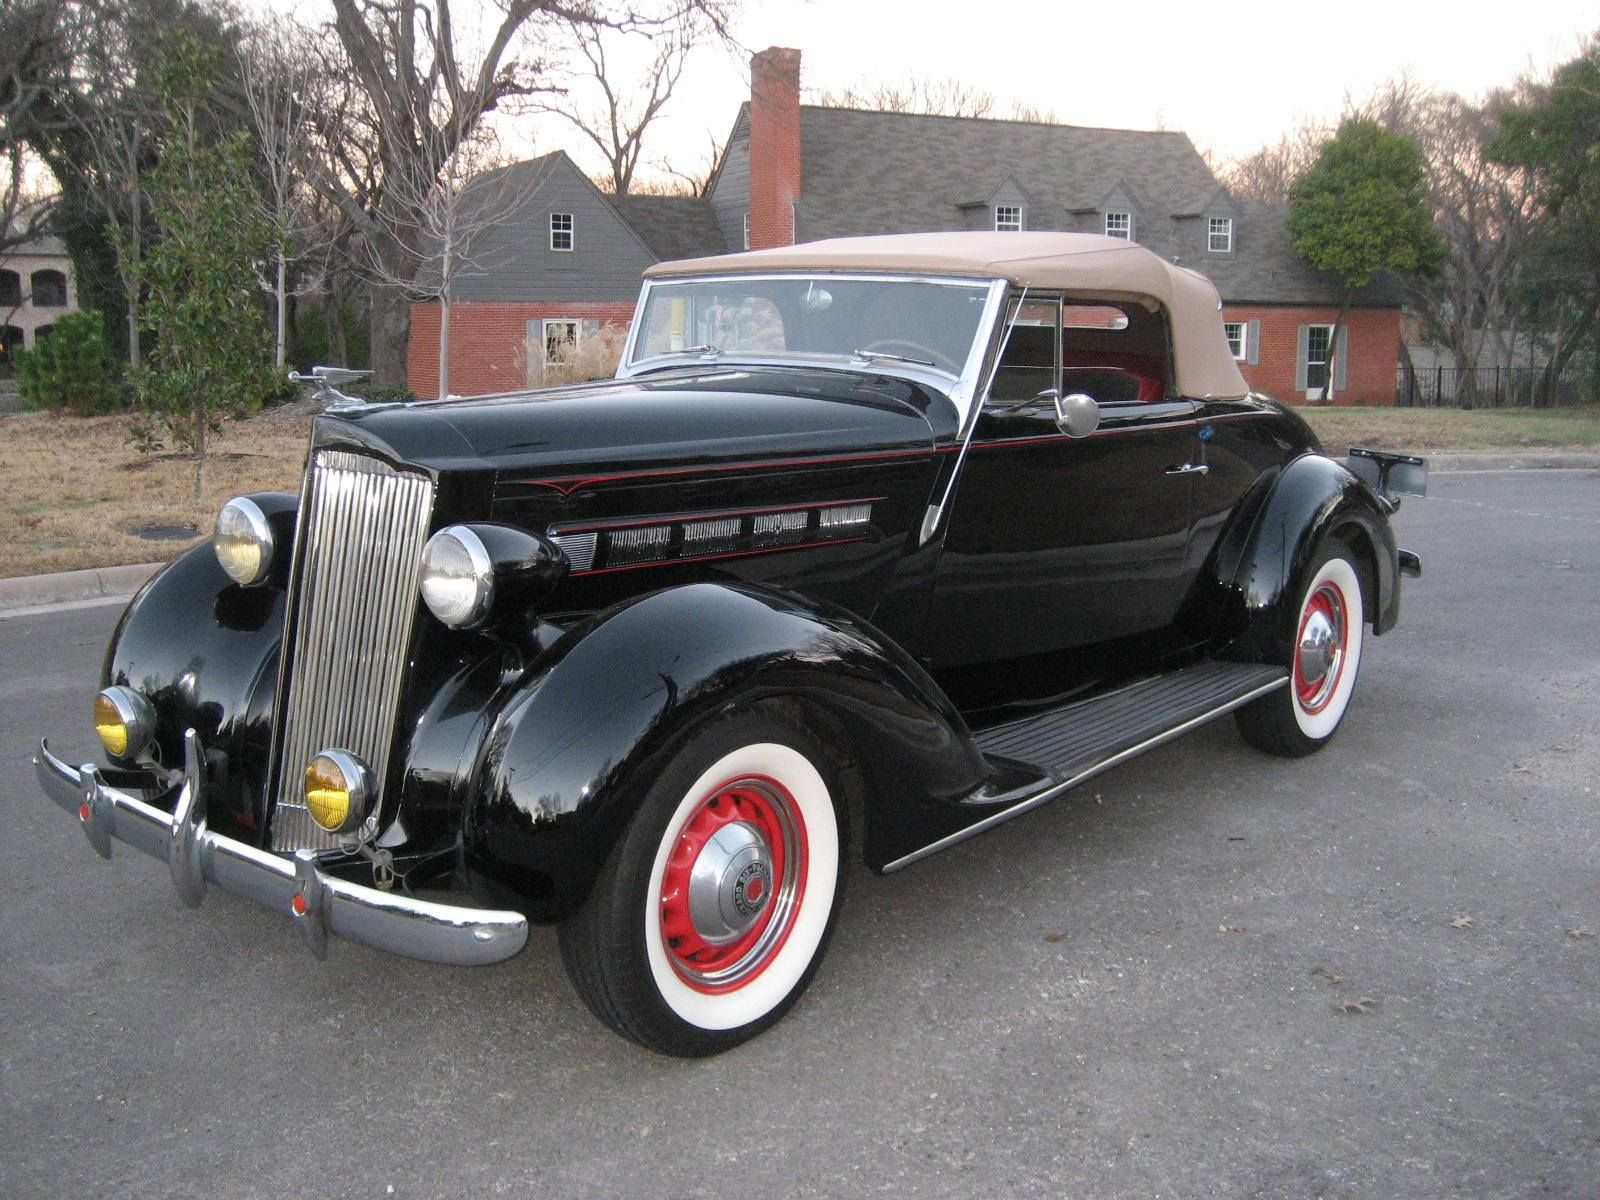 1937 Packard 115-C Convertible Coupe | CARS | Pinterest ...